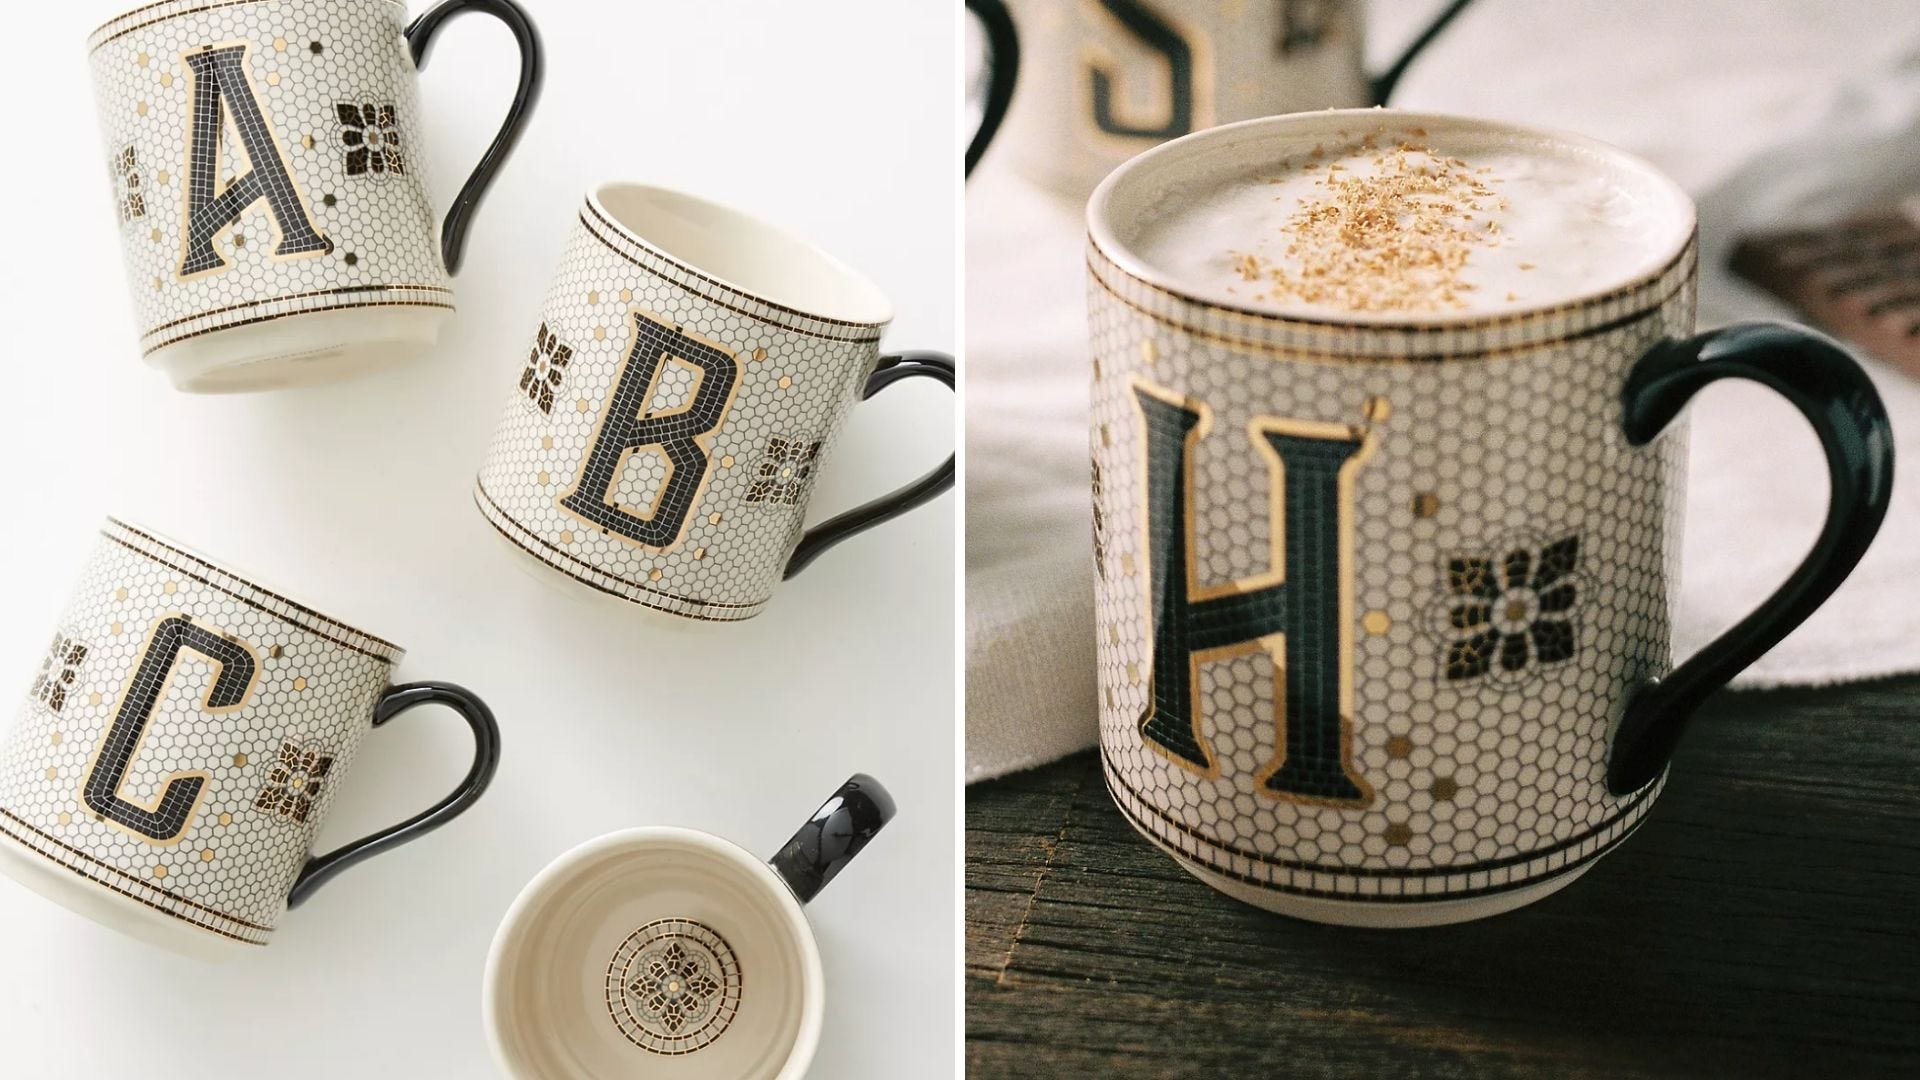 A set of mugs with different letters on them.